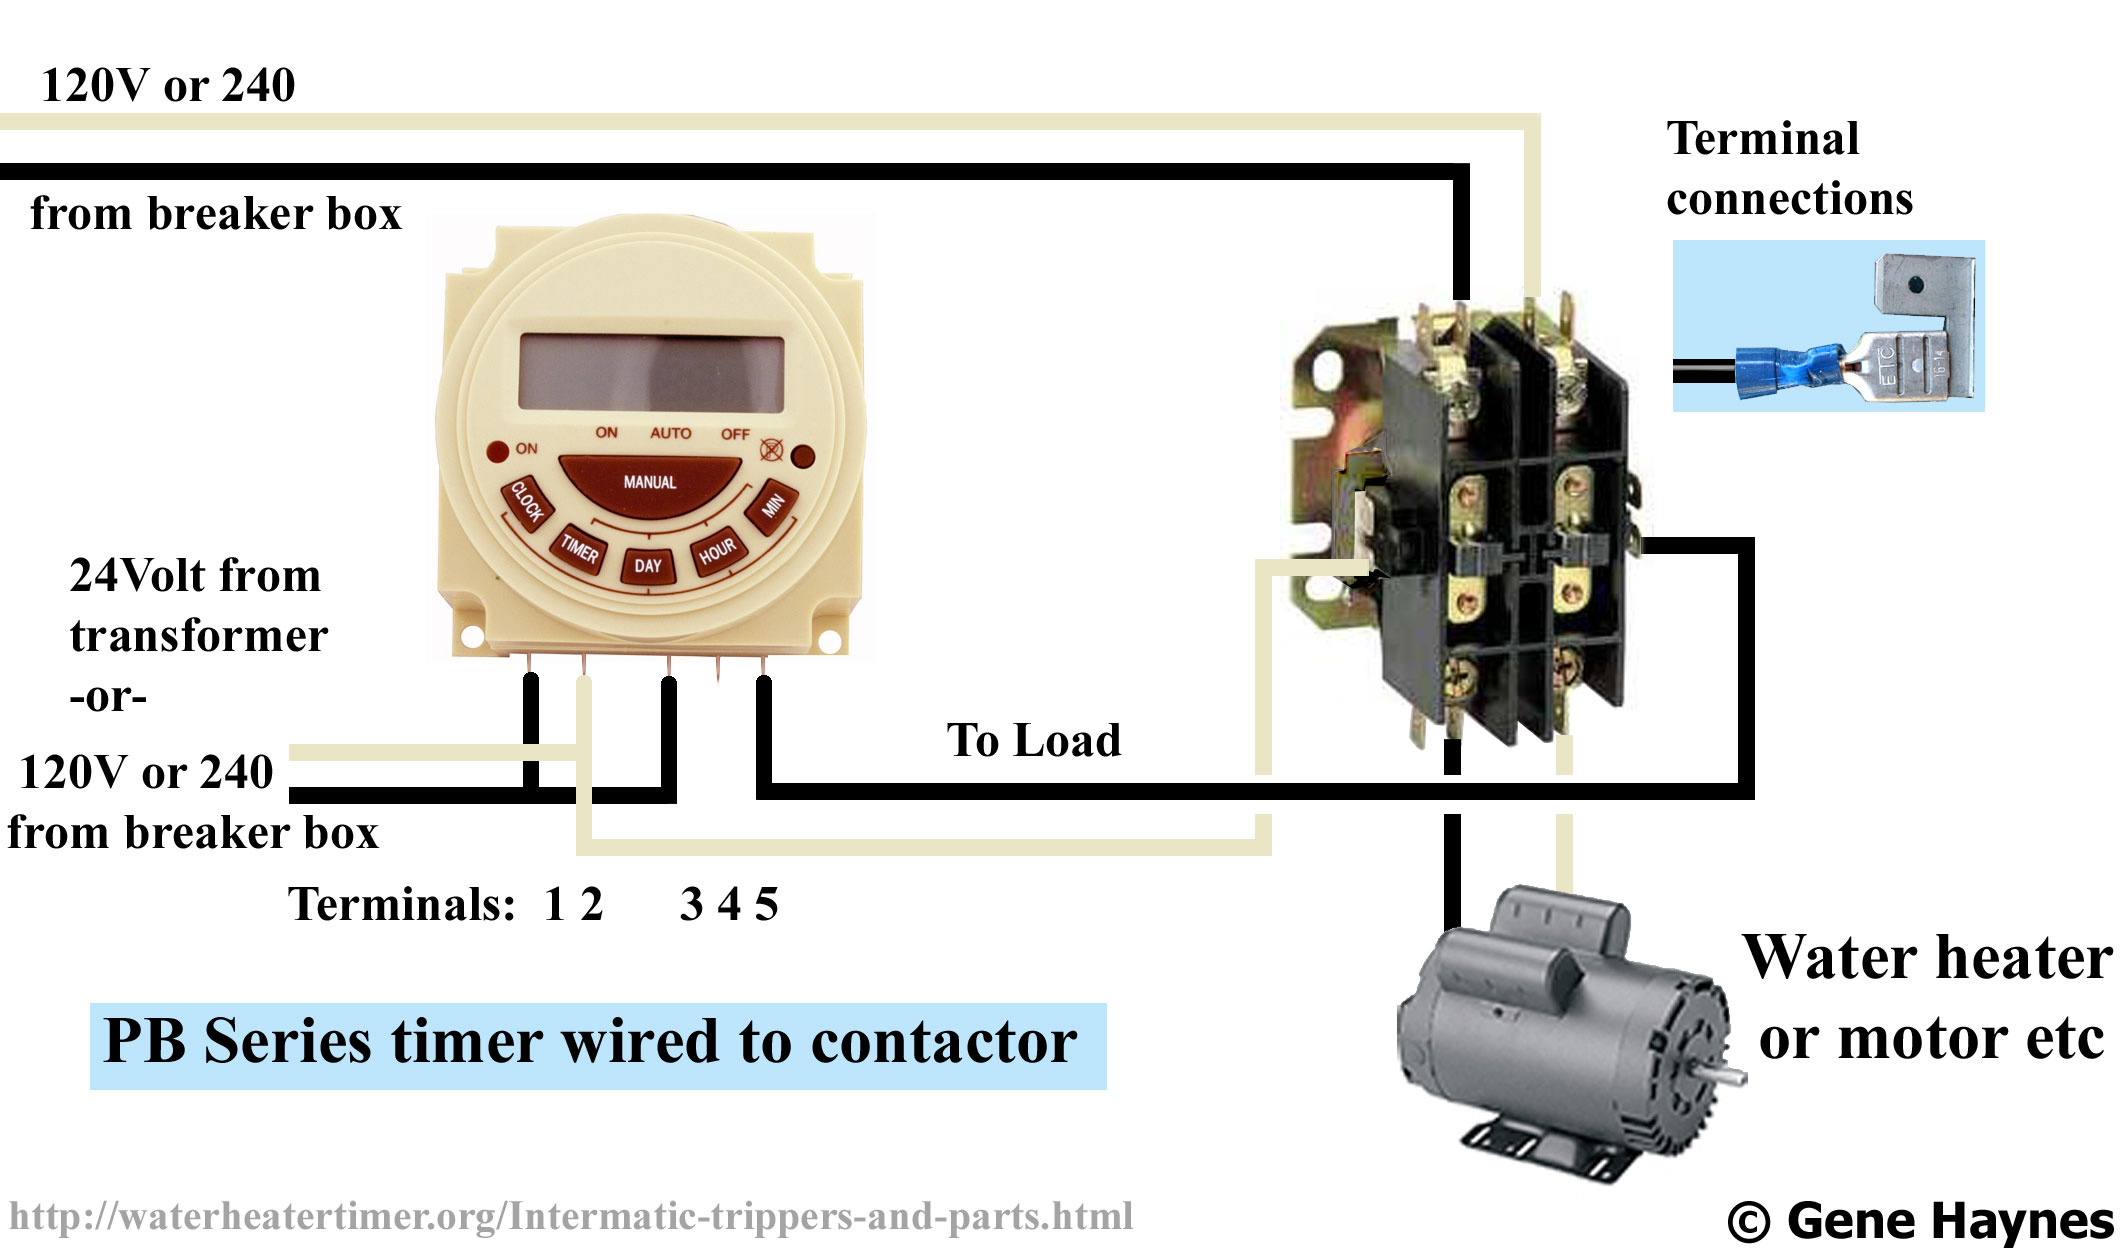 PB 300 series timer wiring motor large intermatic p1103fe cn101a timer wiring diagram at gsmportal.co